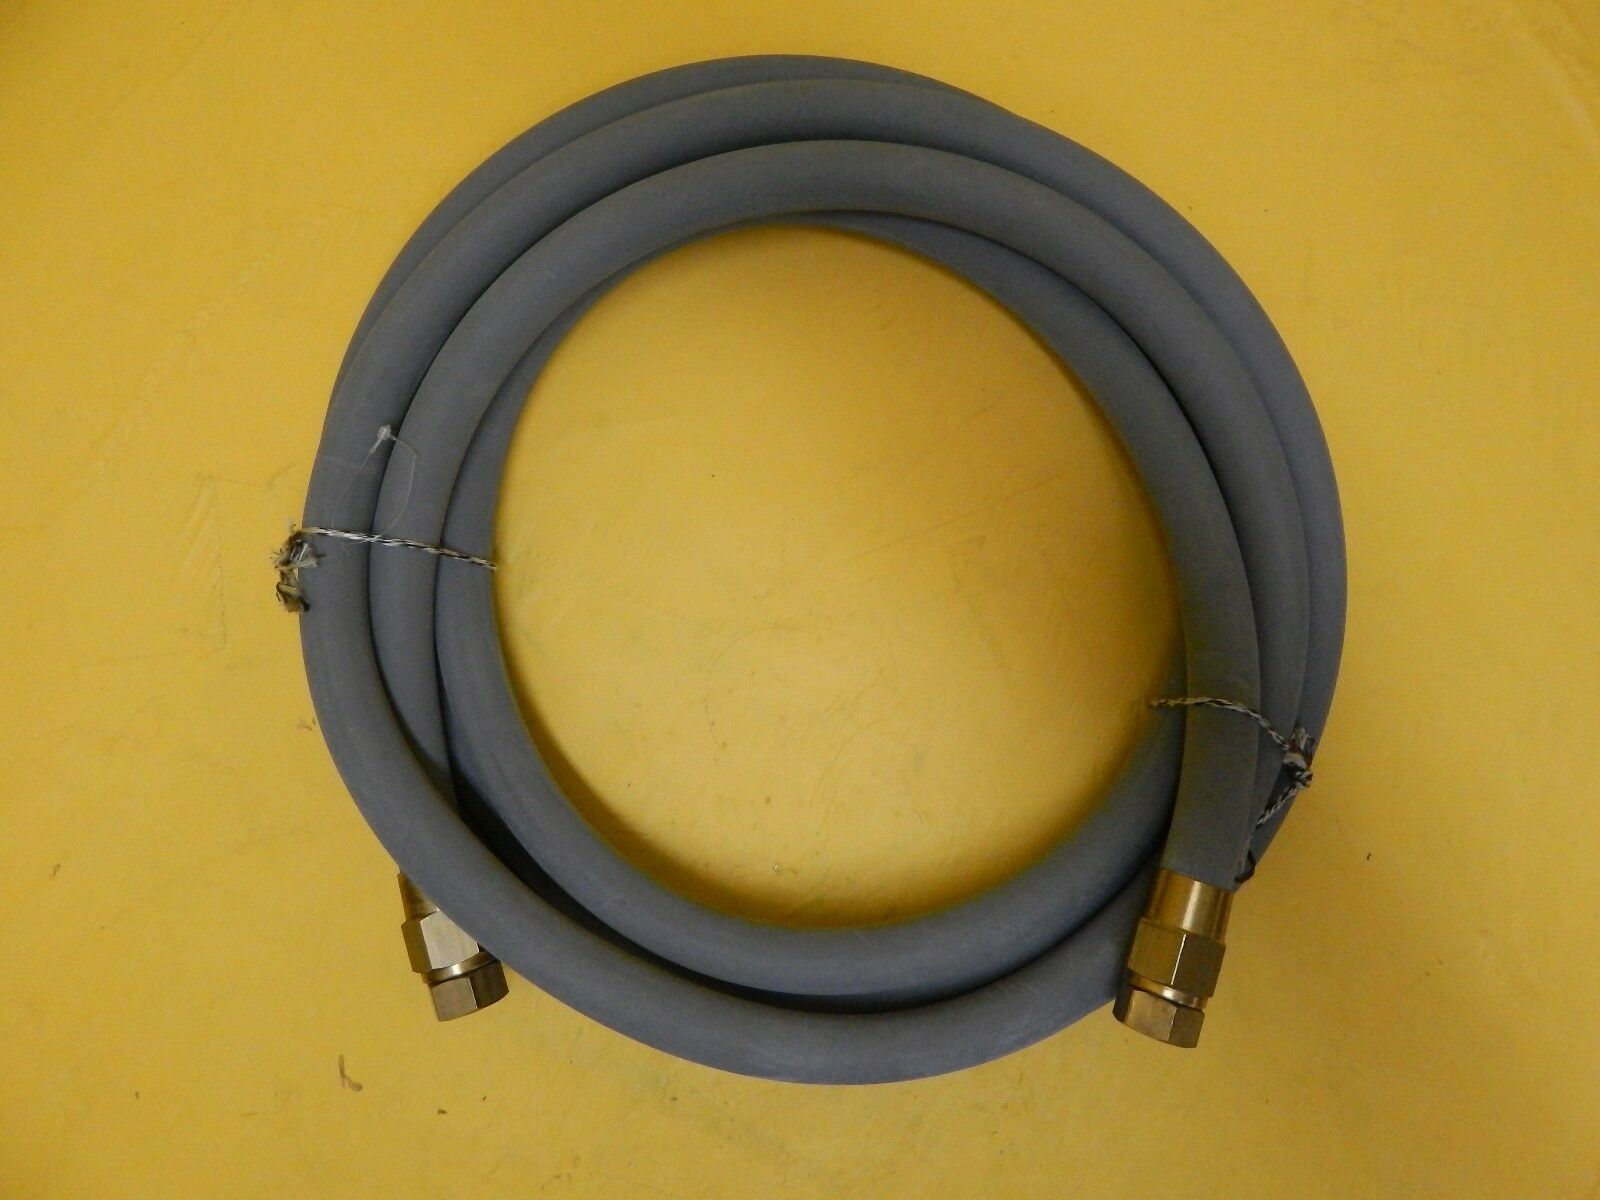 Oerlikon 102211837 Cryo Compressor Water Line 6 Meter Set of 2 Used Working